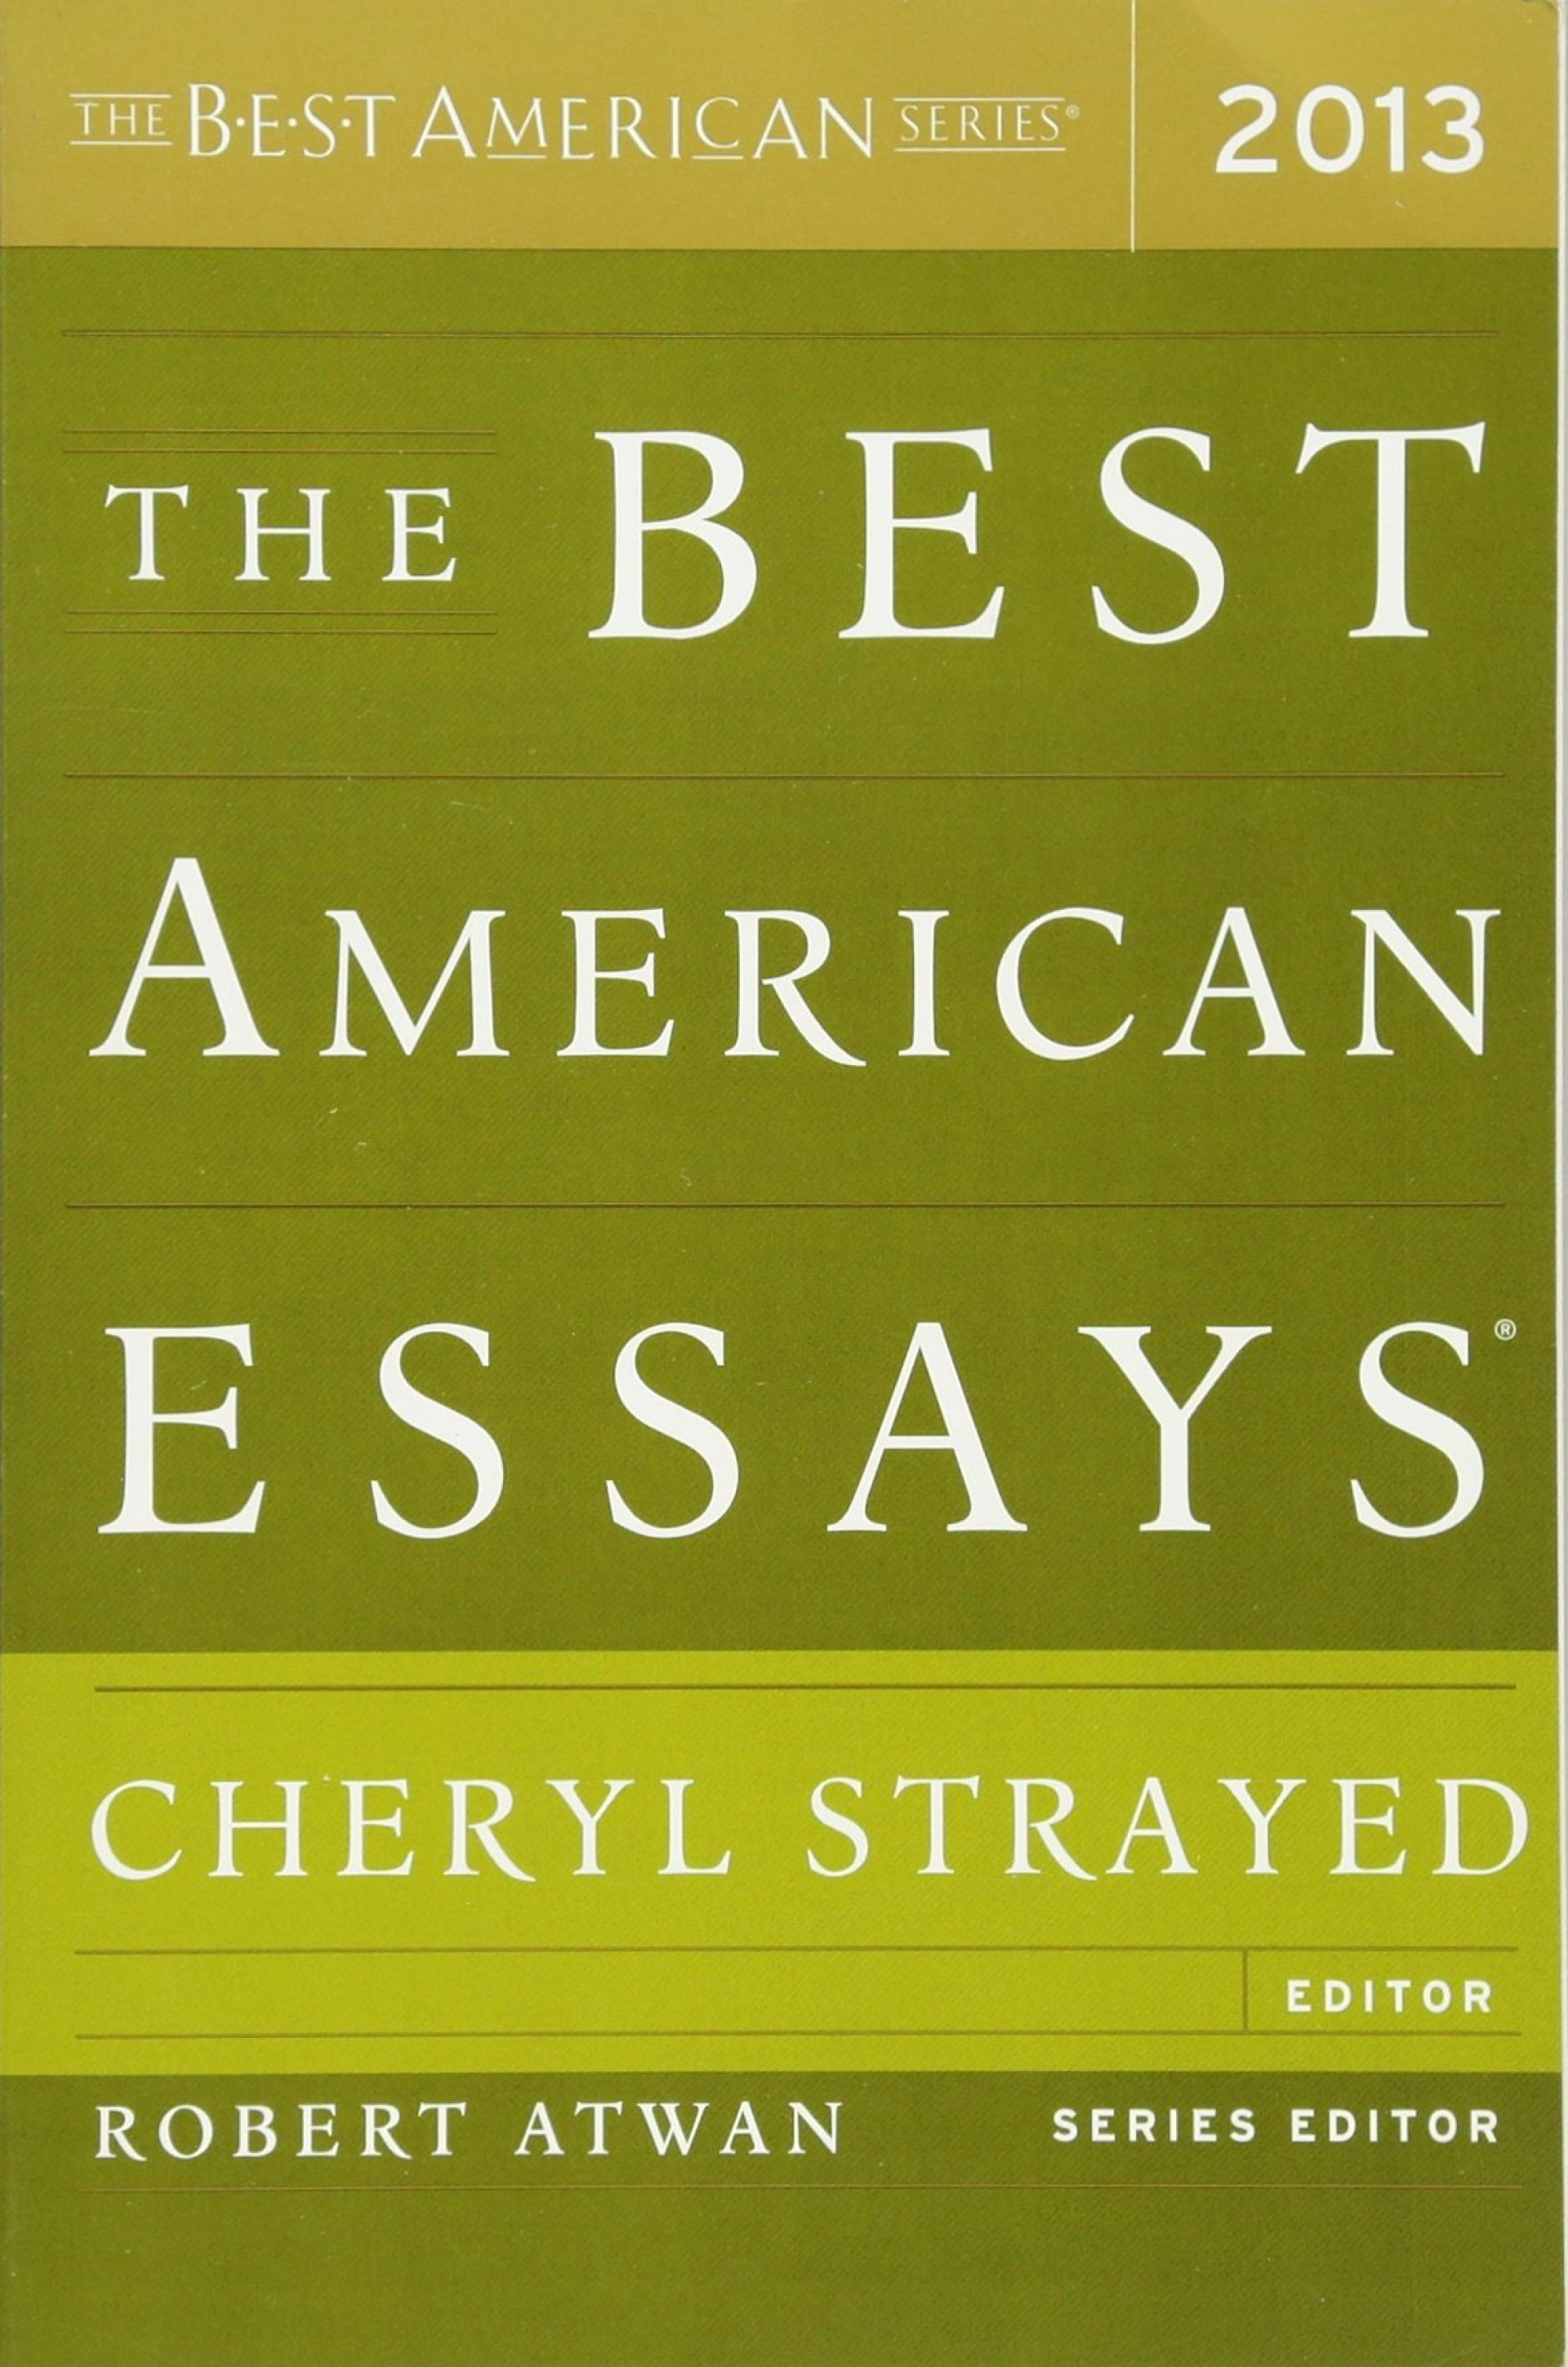 003 Essay Example The Best American Essays Phenomenal 2016 Pdf Download Audiobook Sparknotes 1920